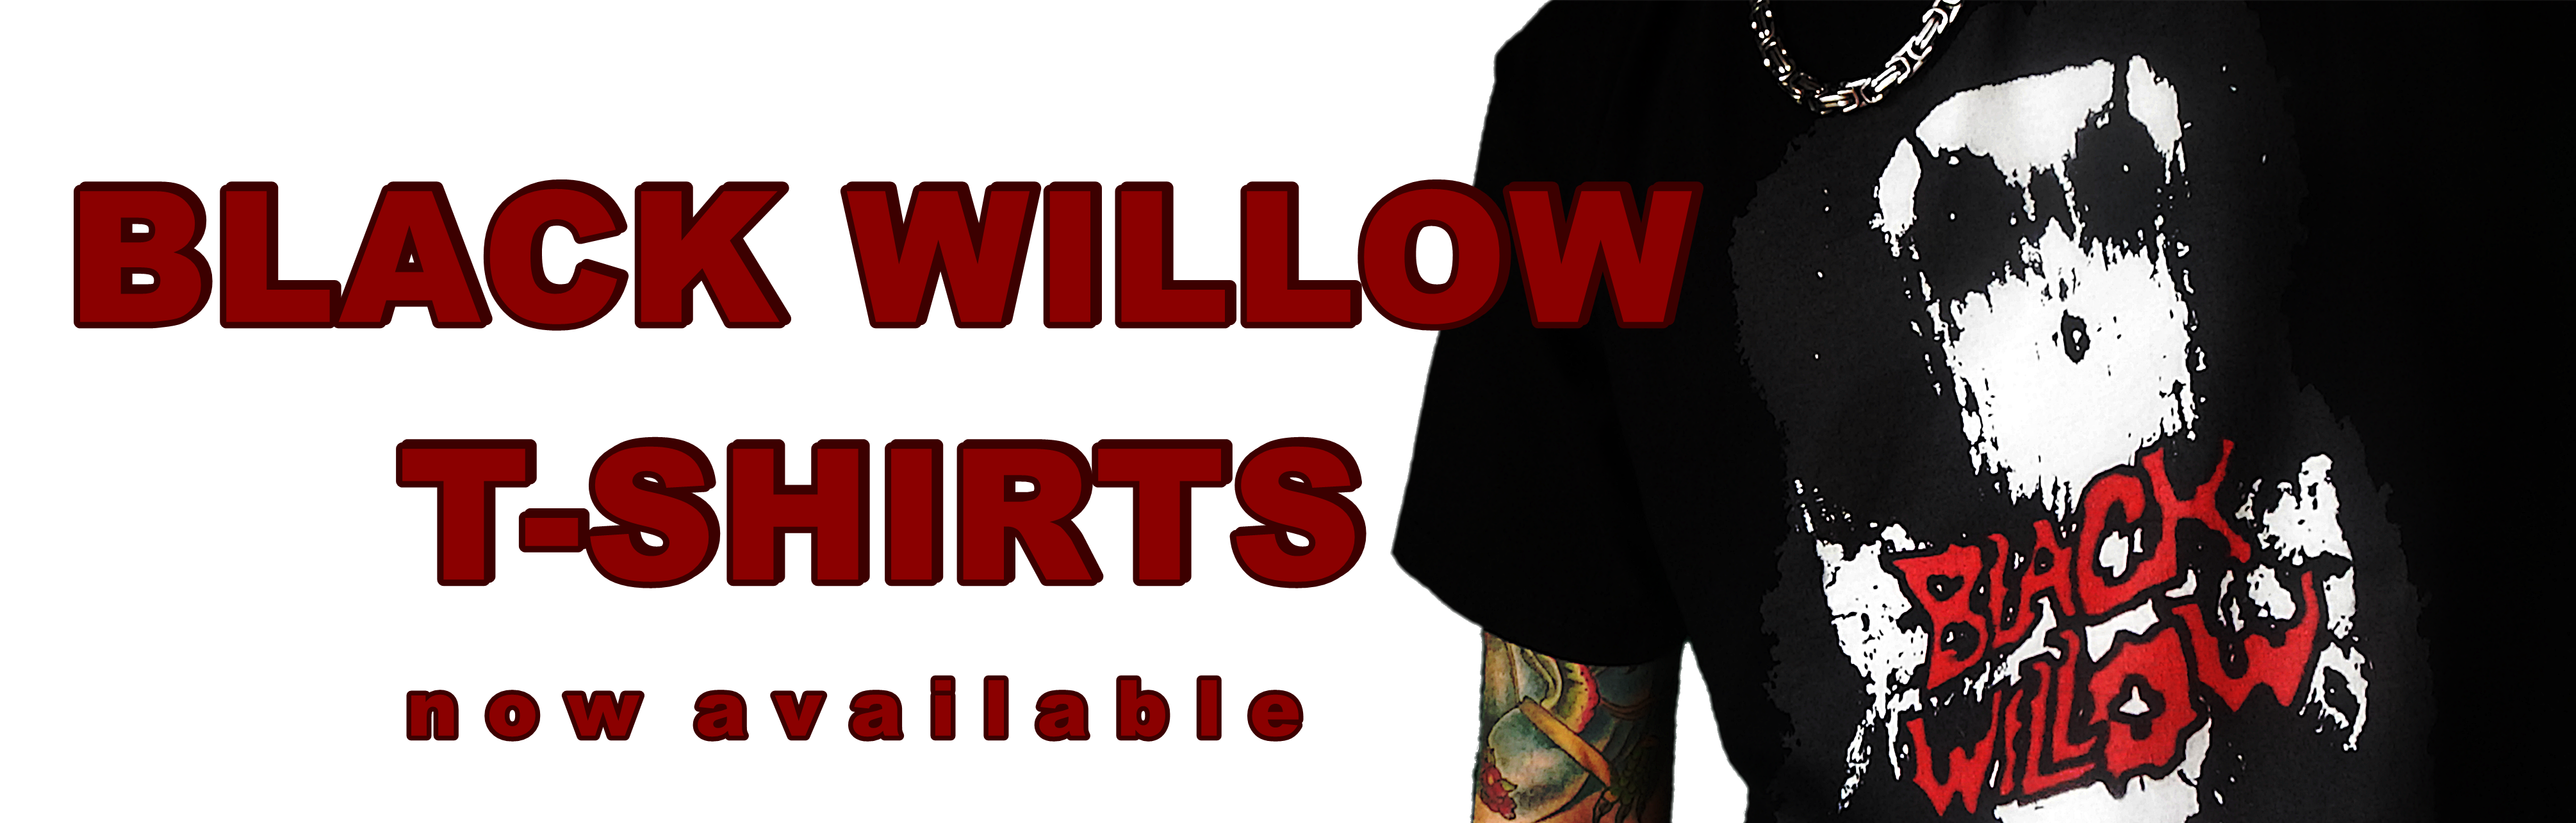 BlackWillowTshirts